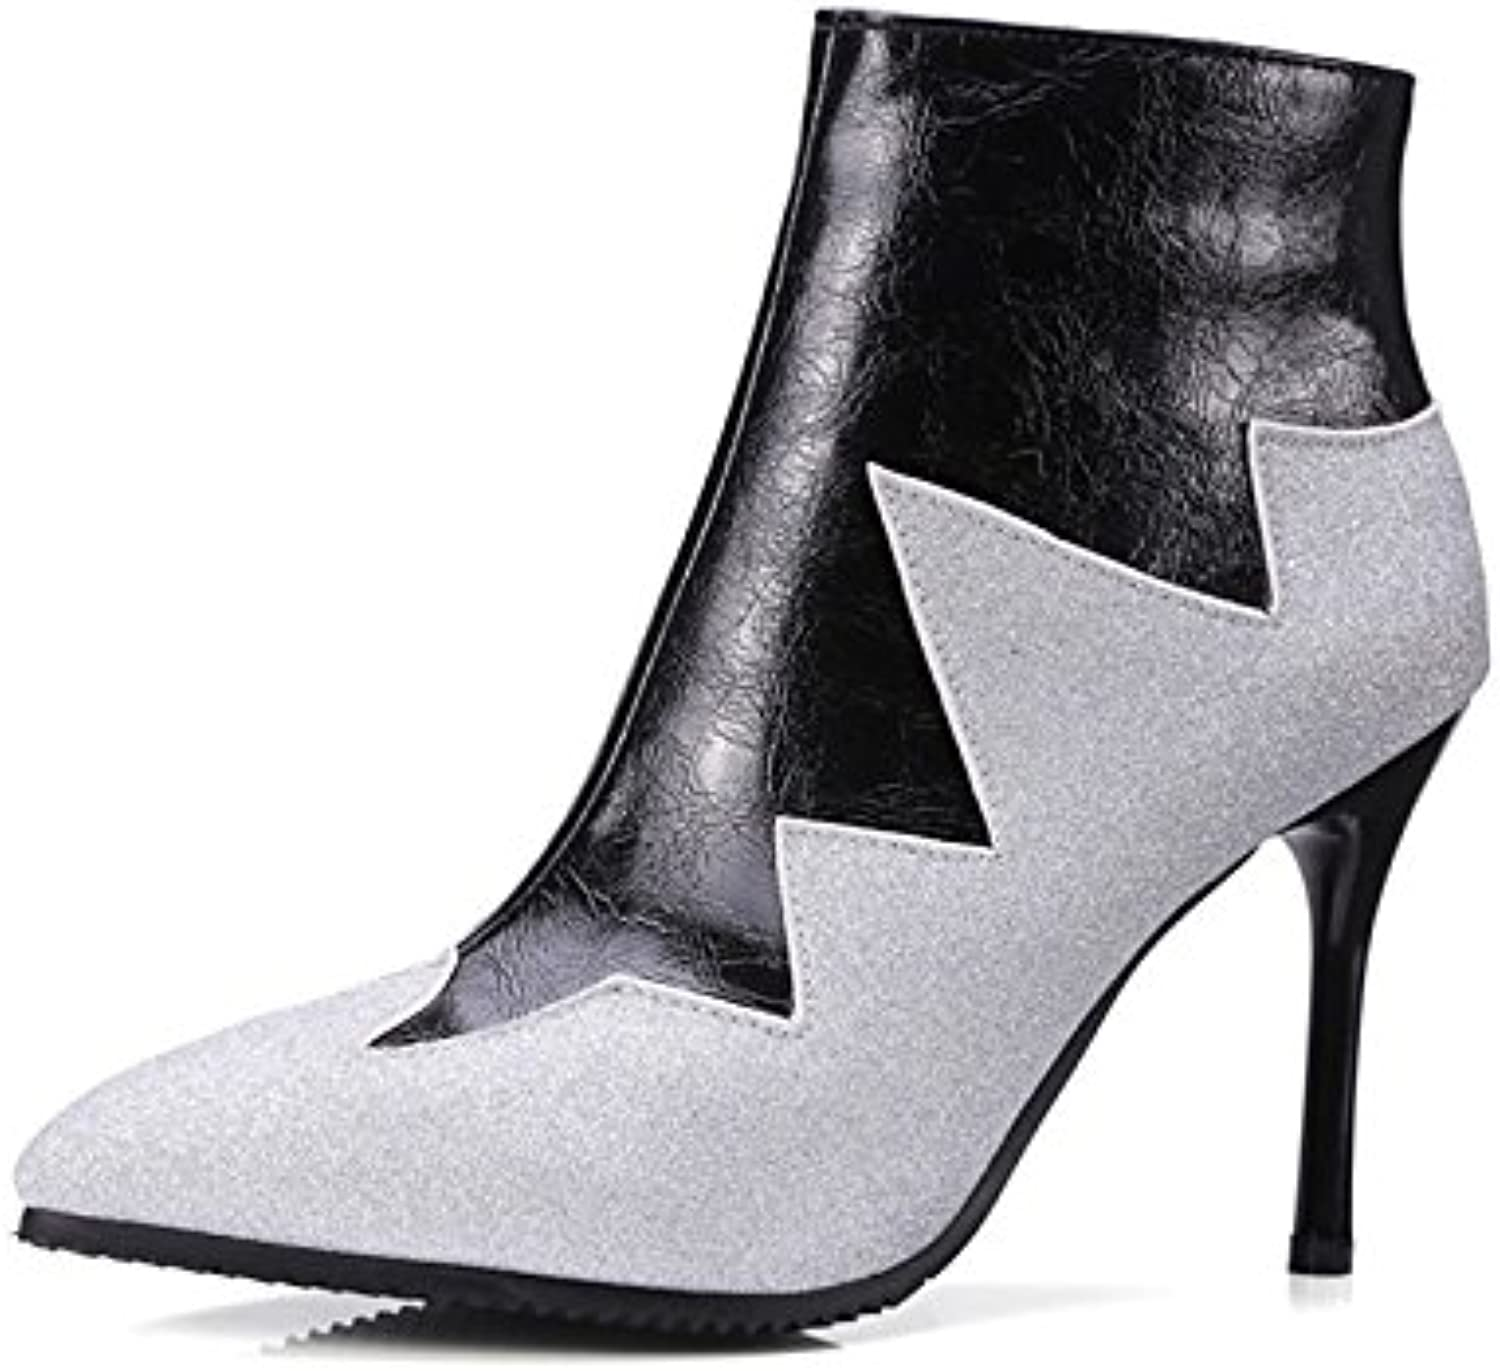 HSXZ Women's shoes Leatherette Winter Fall Fashion Boots Bootie Boots Stiletto Heel Pointed Toe Booties Ankle Boots for Office\Career Dress